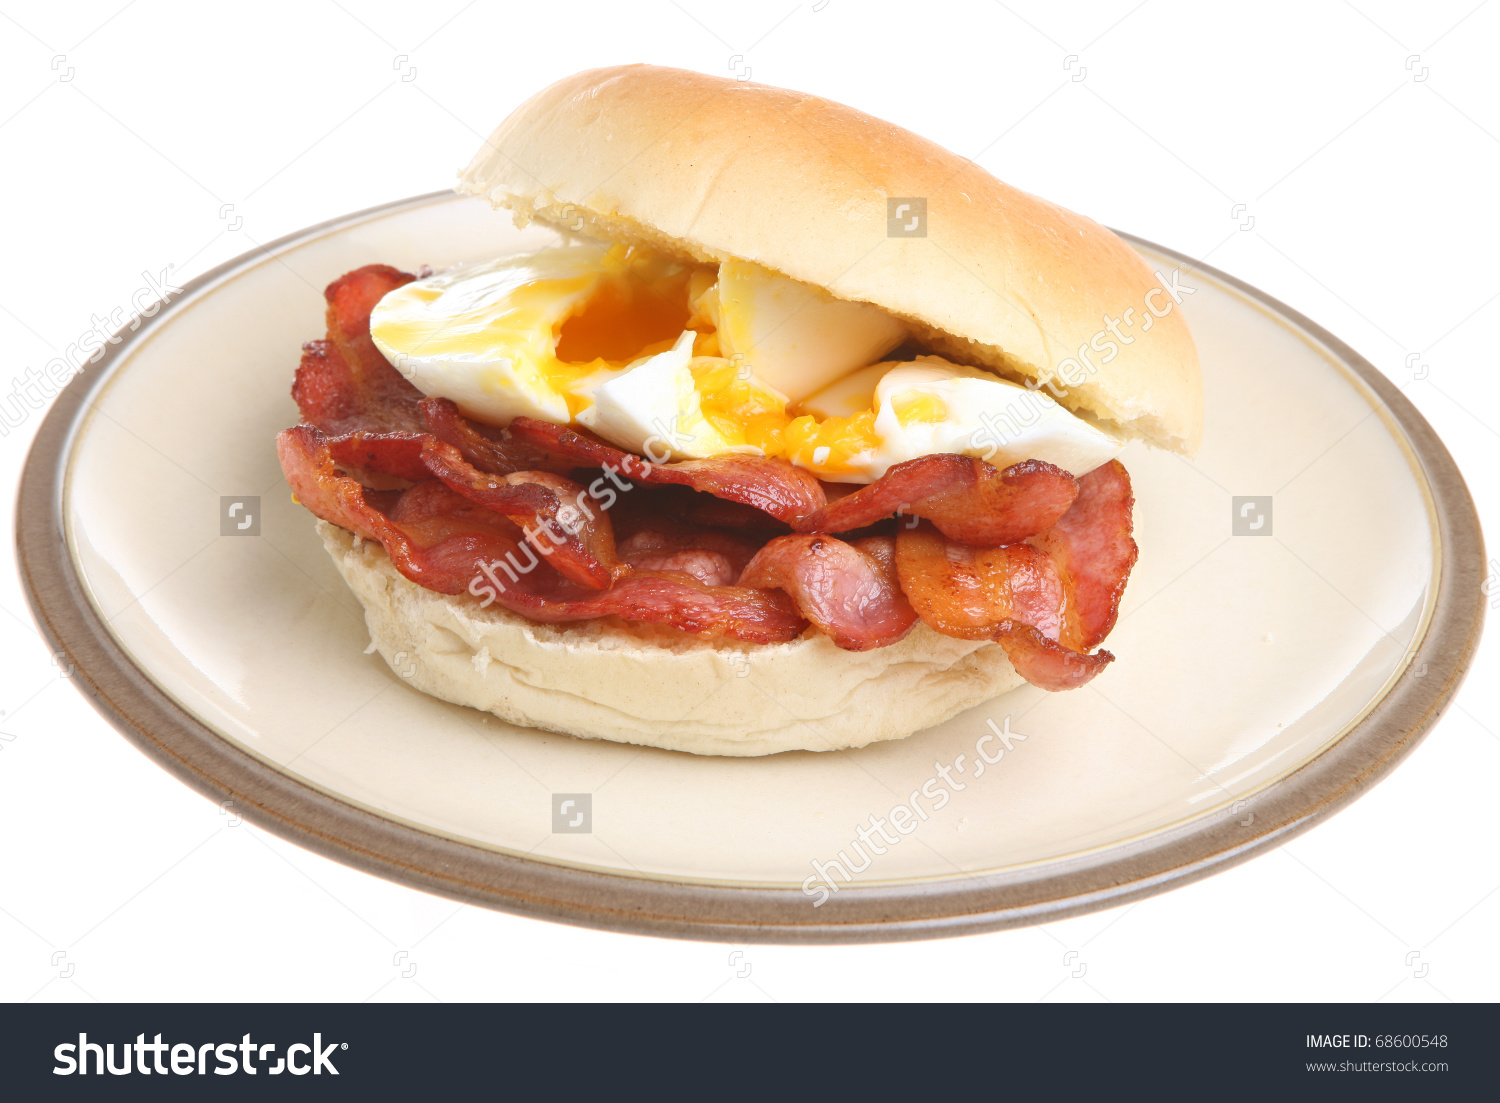 Streaky Bacon Poached Egg Roll Stock Photo 68600548.